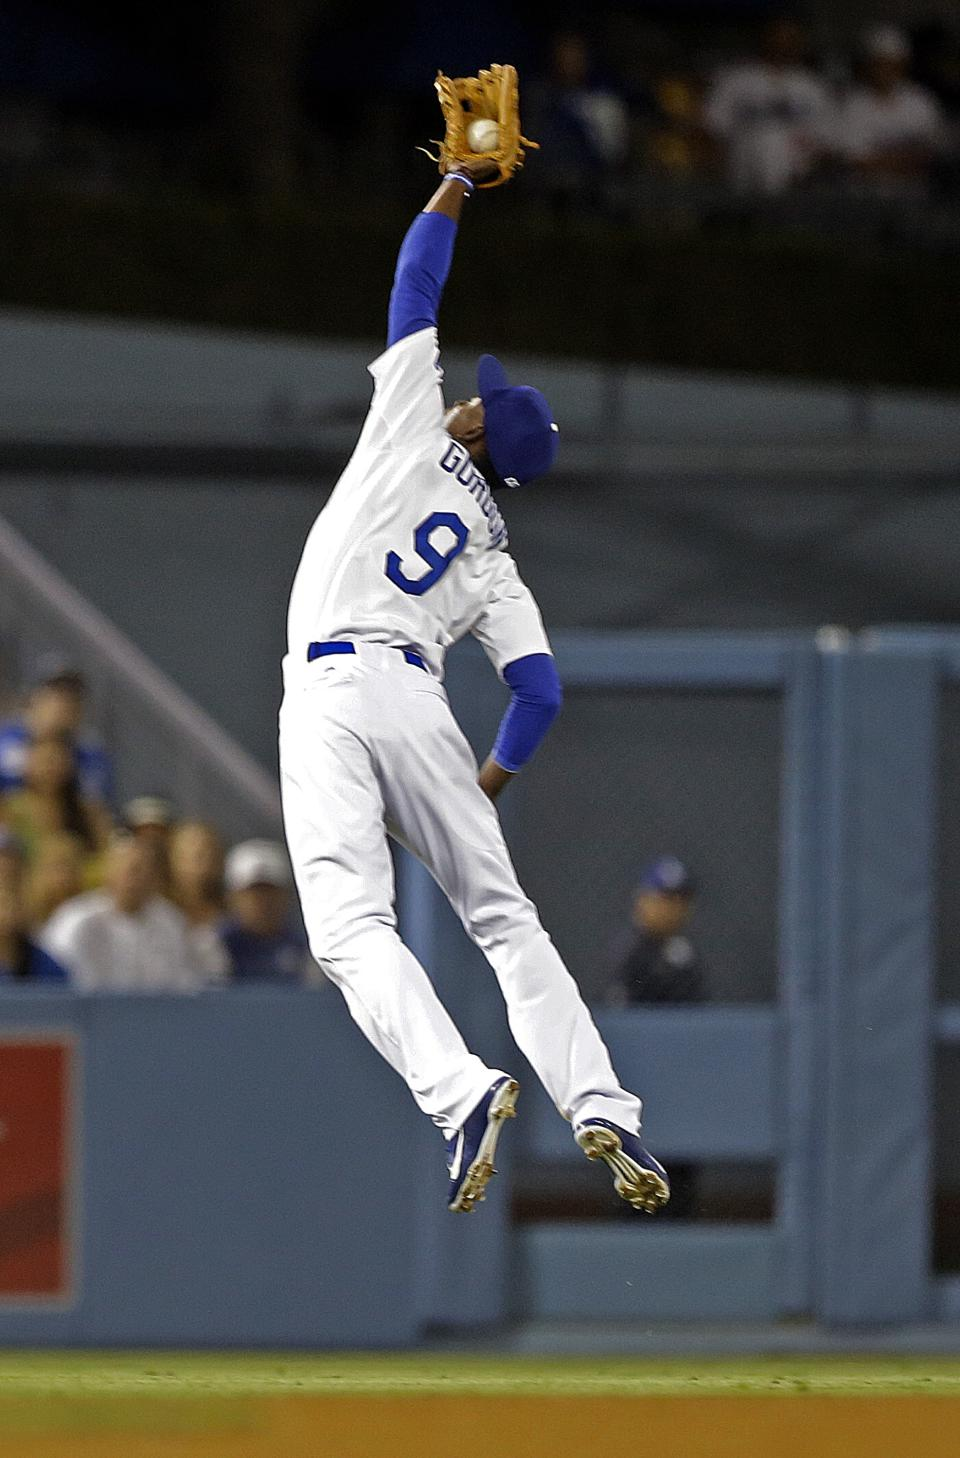 Los Angeles Dodgers shortstop Dee Gordon leaps for a high fly off Washington Nationals' Denard Span in the eighth inning of a baseball game in Los Angeles Tuesday, May 14, 2013. (AP Photo/Reed Saxon)